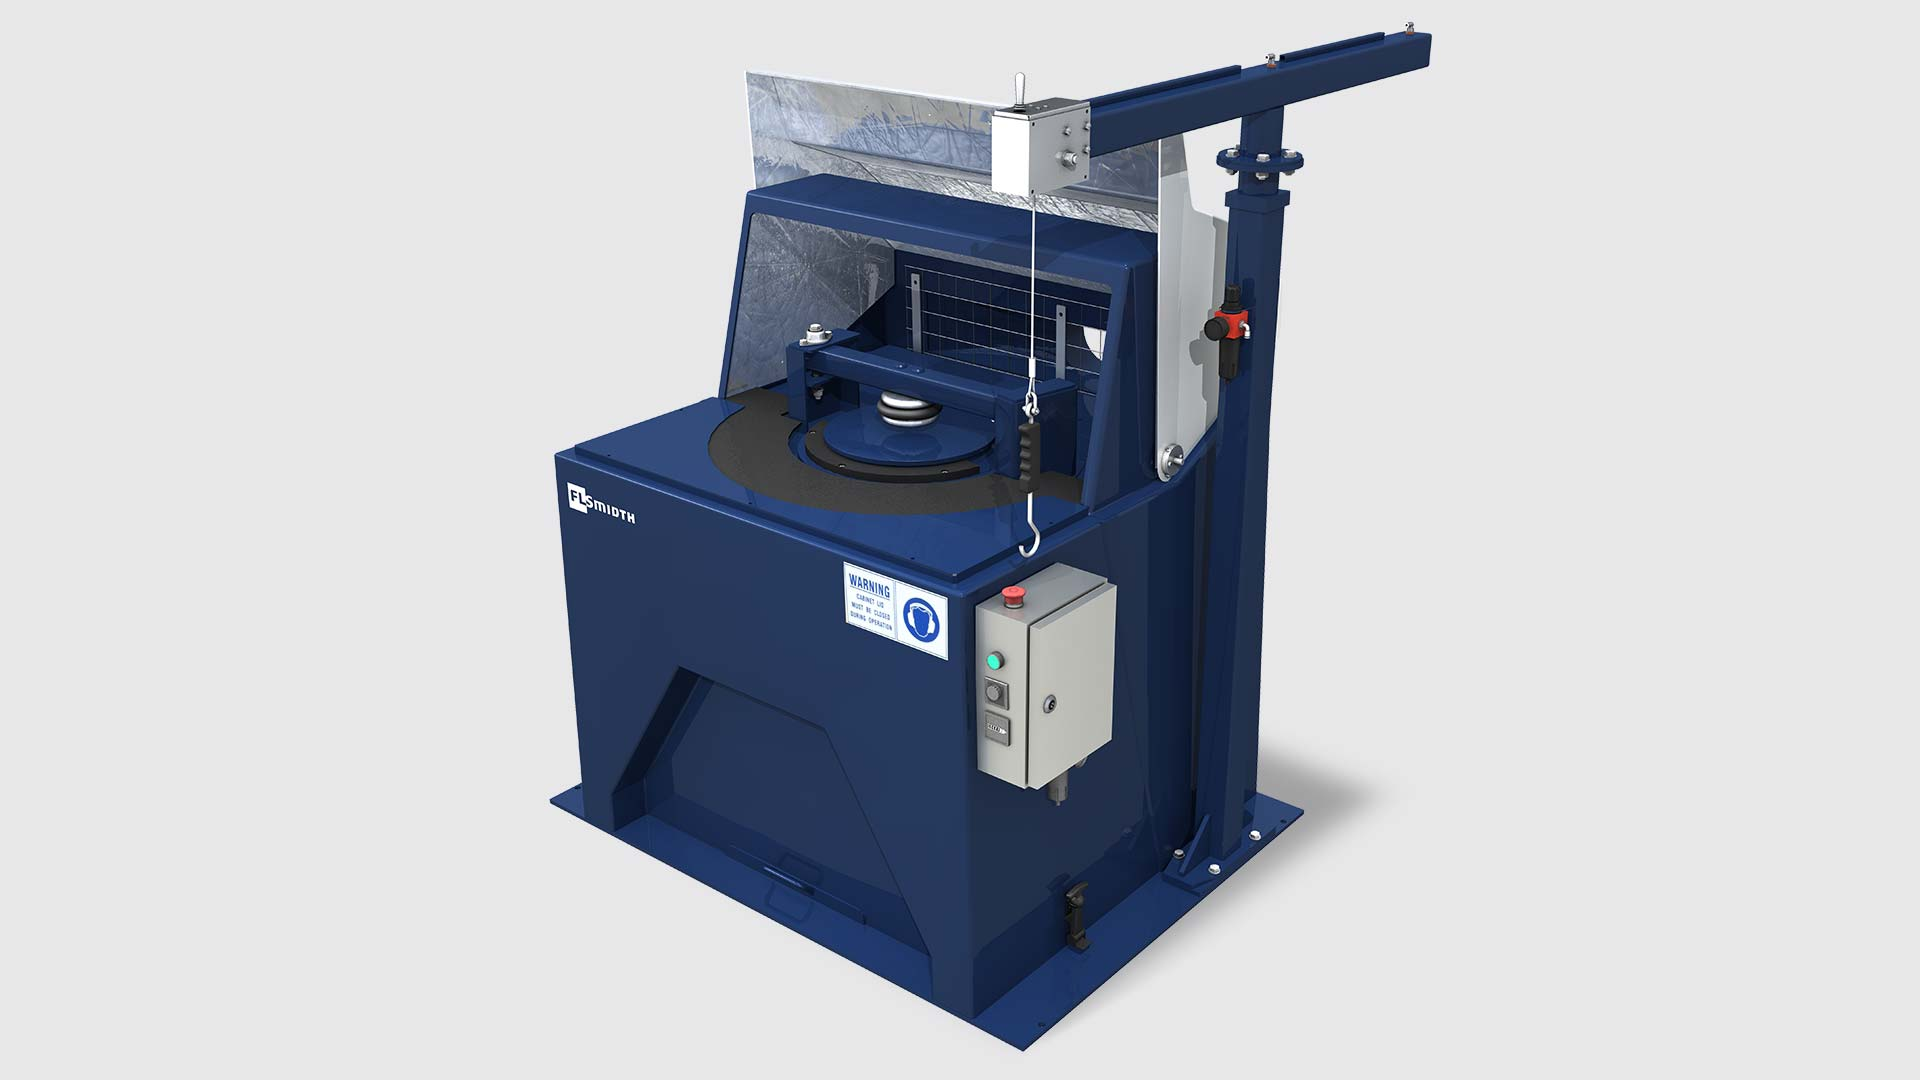 LM5 pulverising mill - cover open